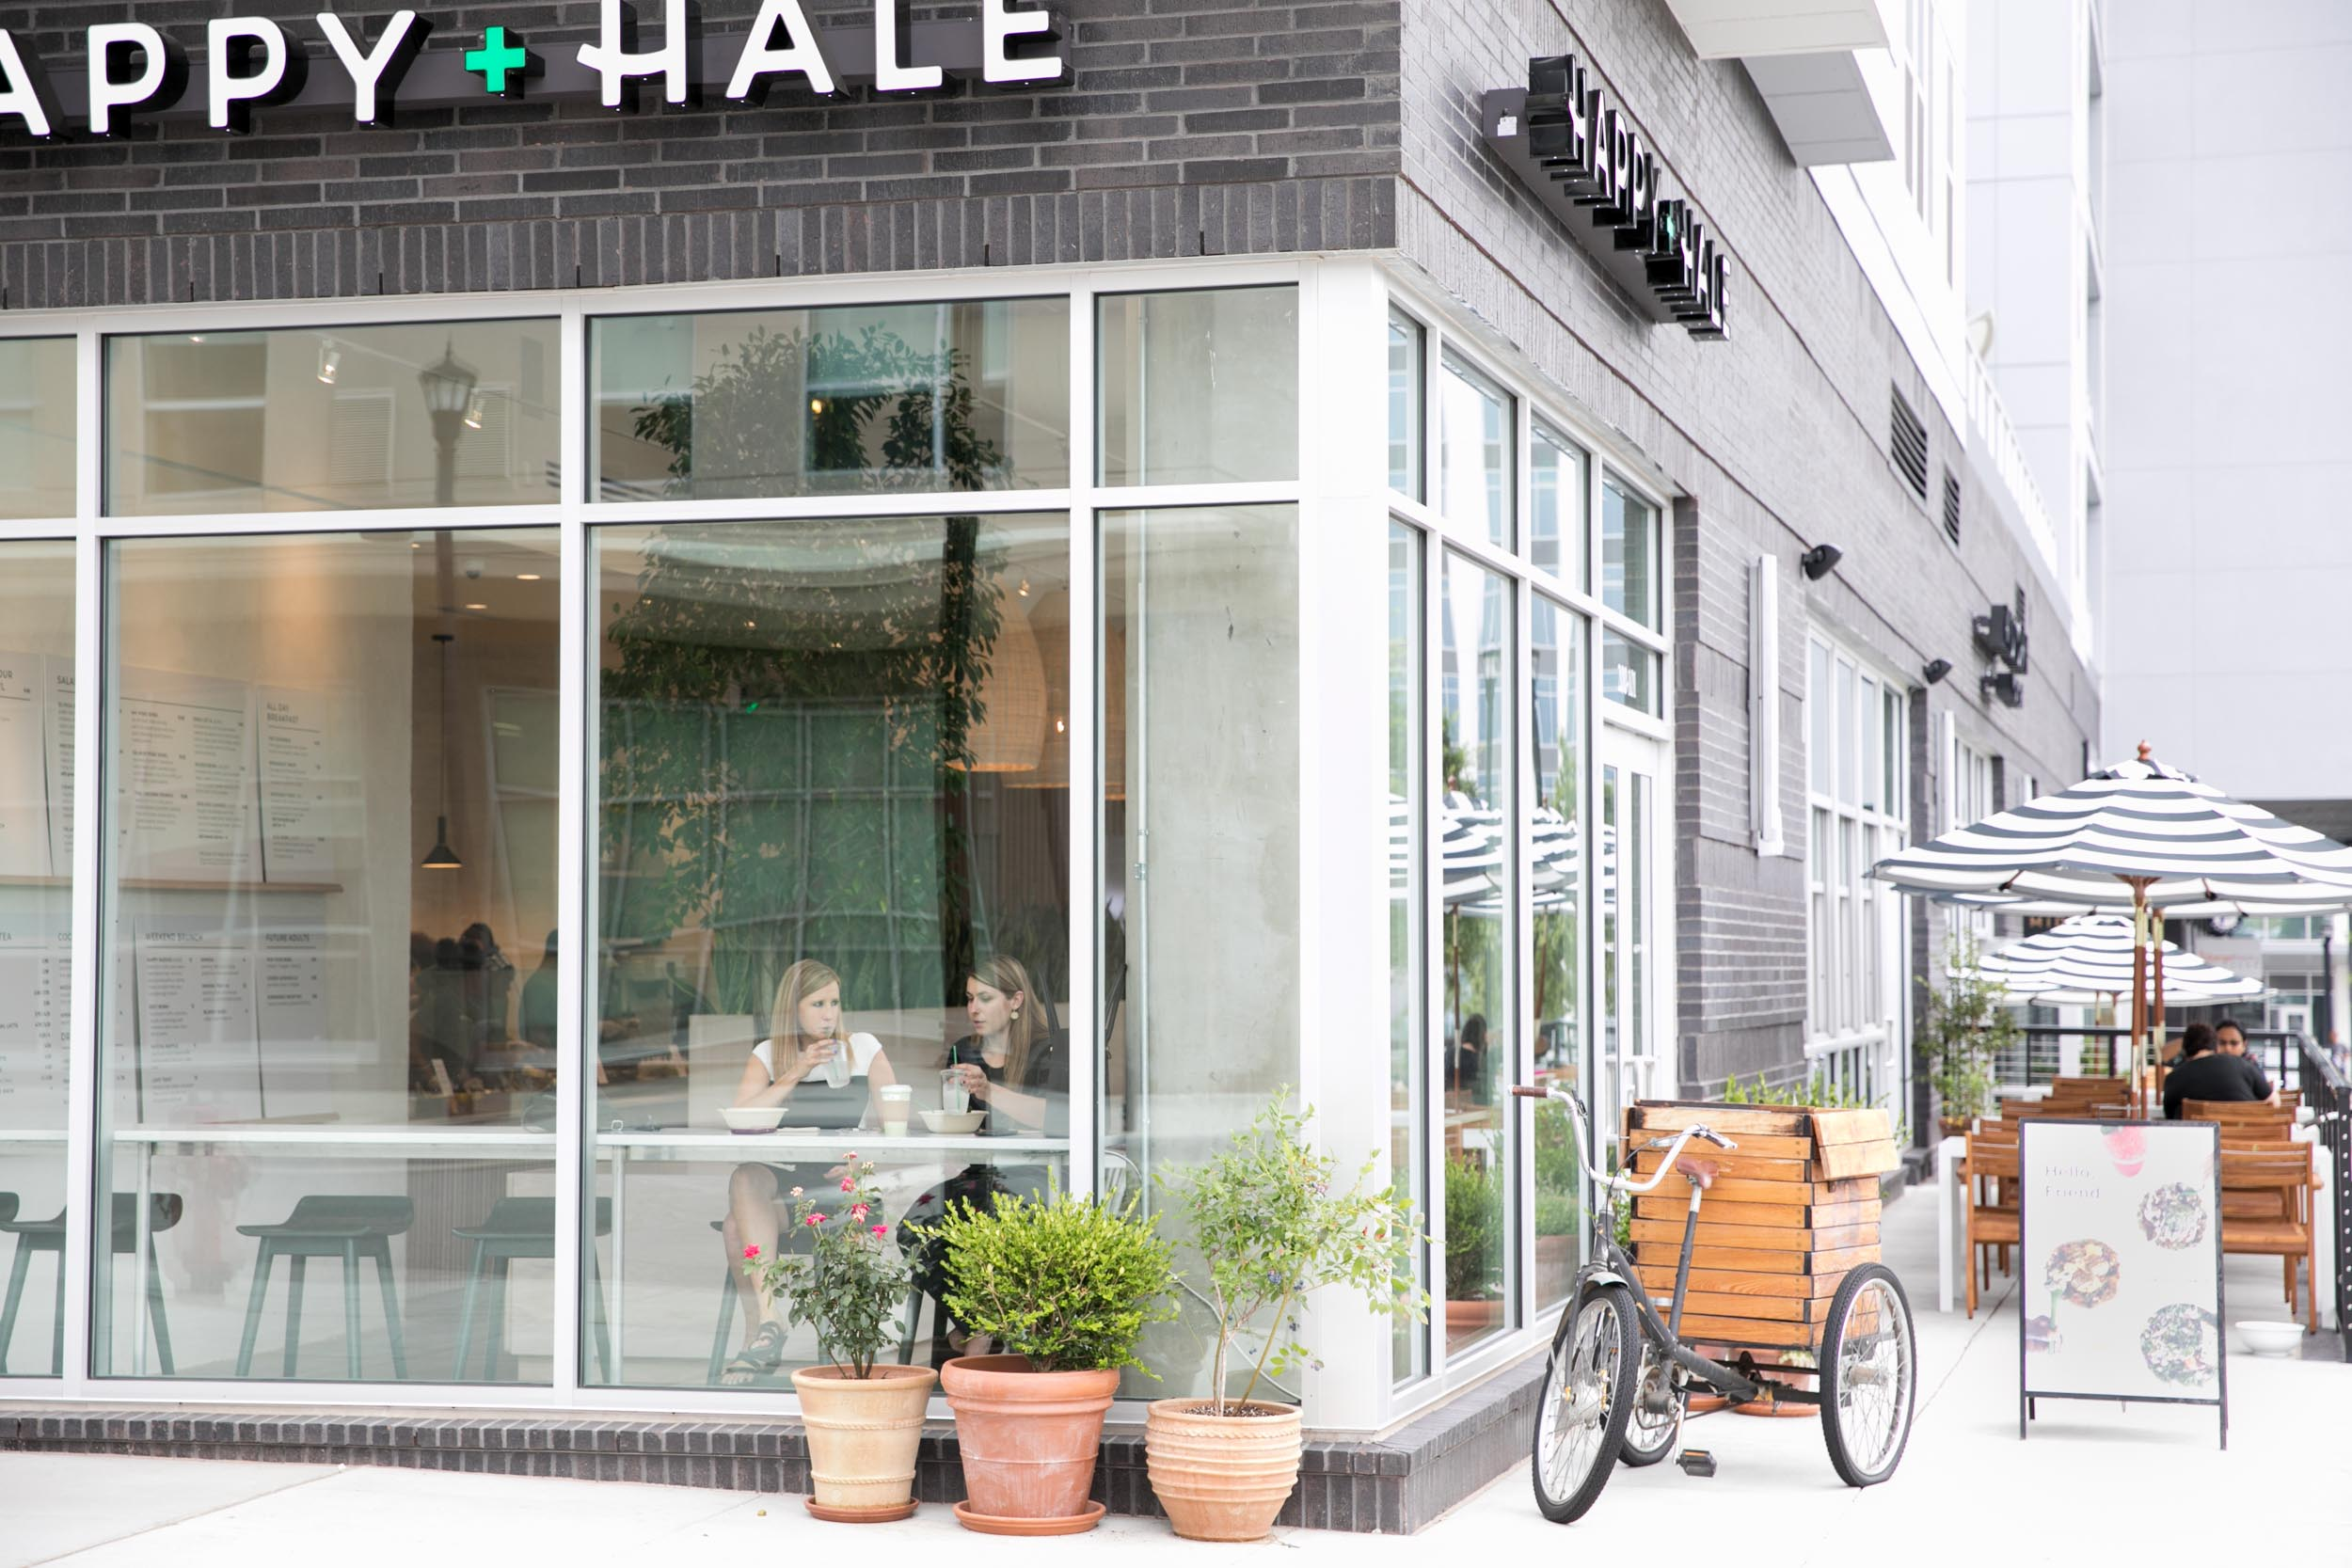 Branding for Happy + Hale by Good South